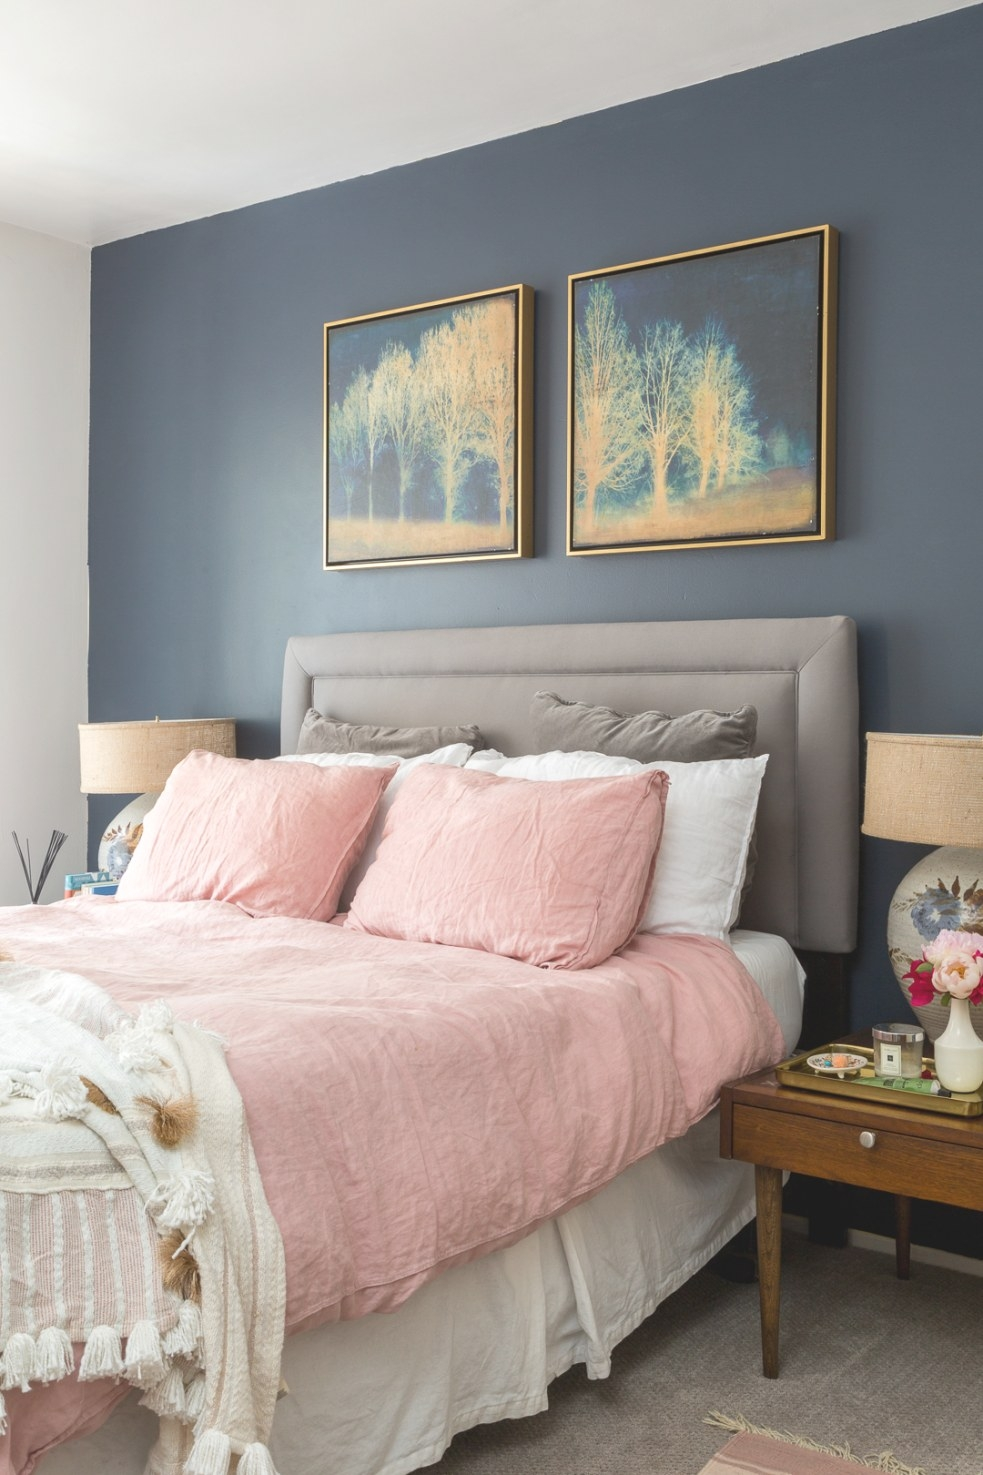 Boho Chic Navy And Pink Bedroom - A Vintage Splendor At Home within Navy Blue And Gold Bedroom